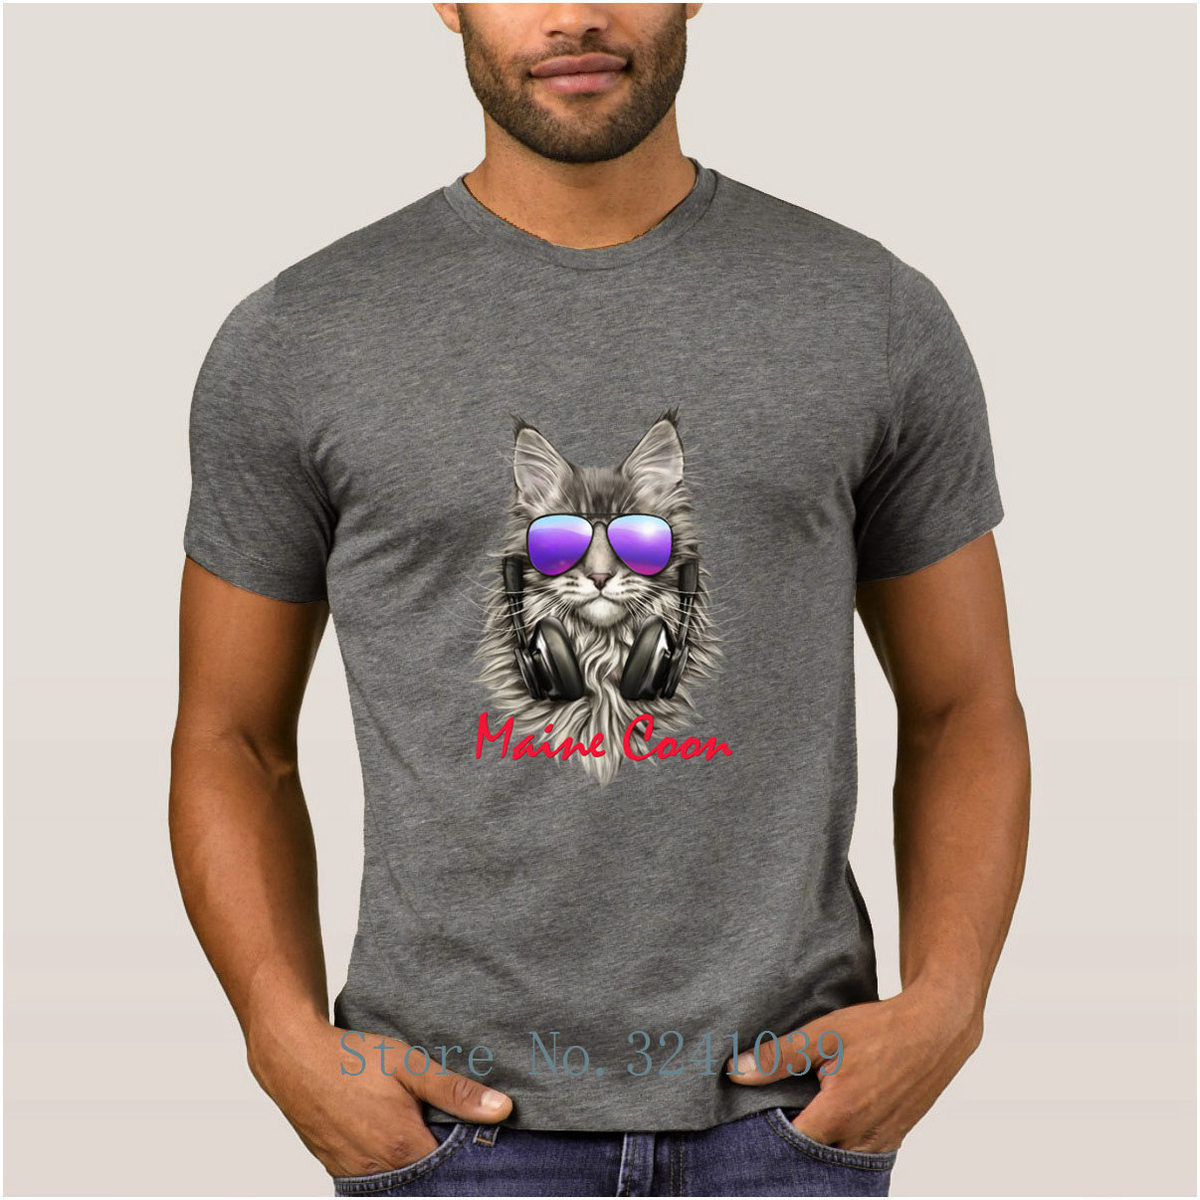 La Maxpa Print Great maine coon t shirt summer Fit Crazy DJ Cat t-shirt men large Novelty tee shirt Short Sleeve HipHop